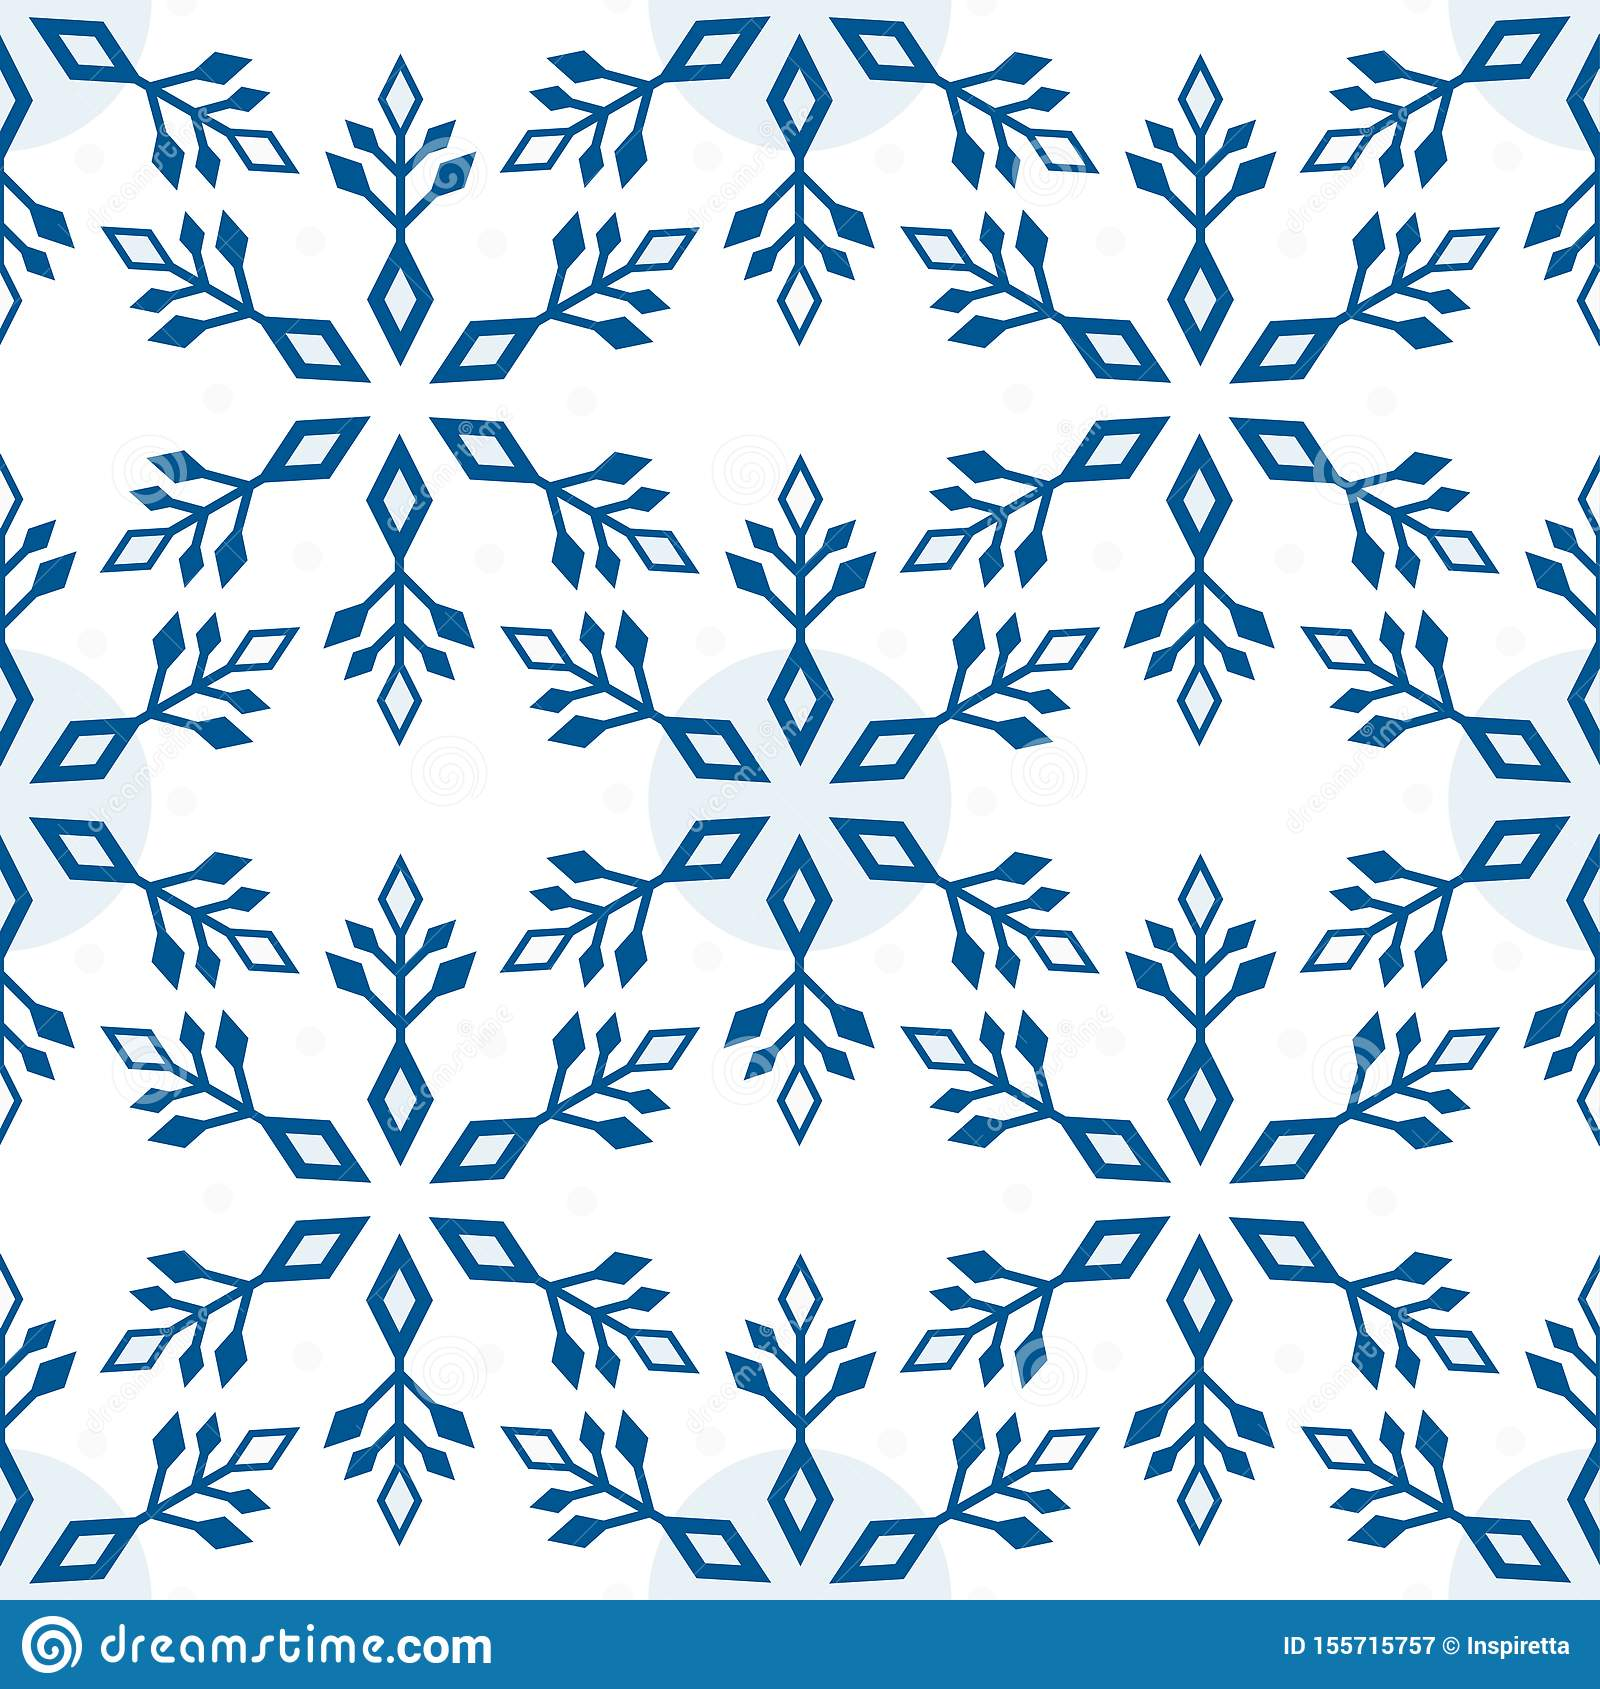 Seamless pattern from light blue snowflakes on a white background. Abstract geometric winter shapes, vector illustration